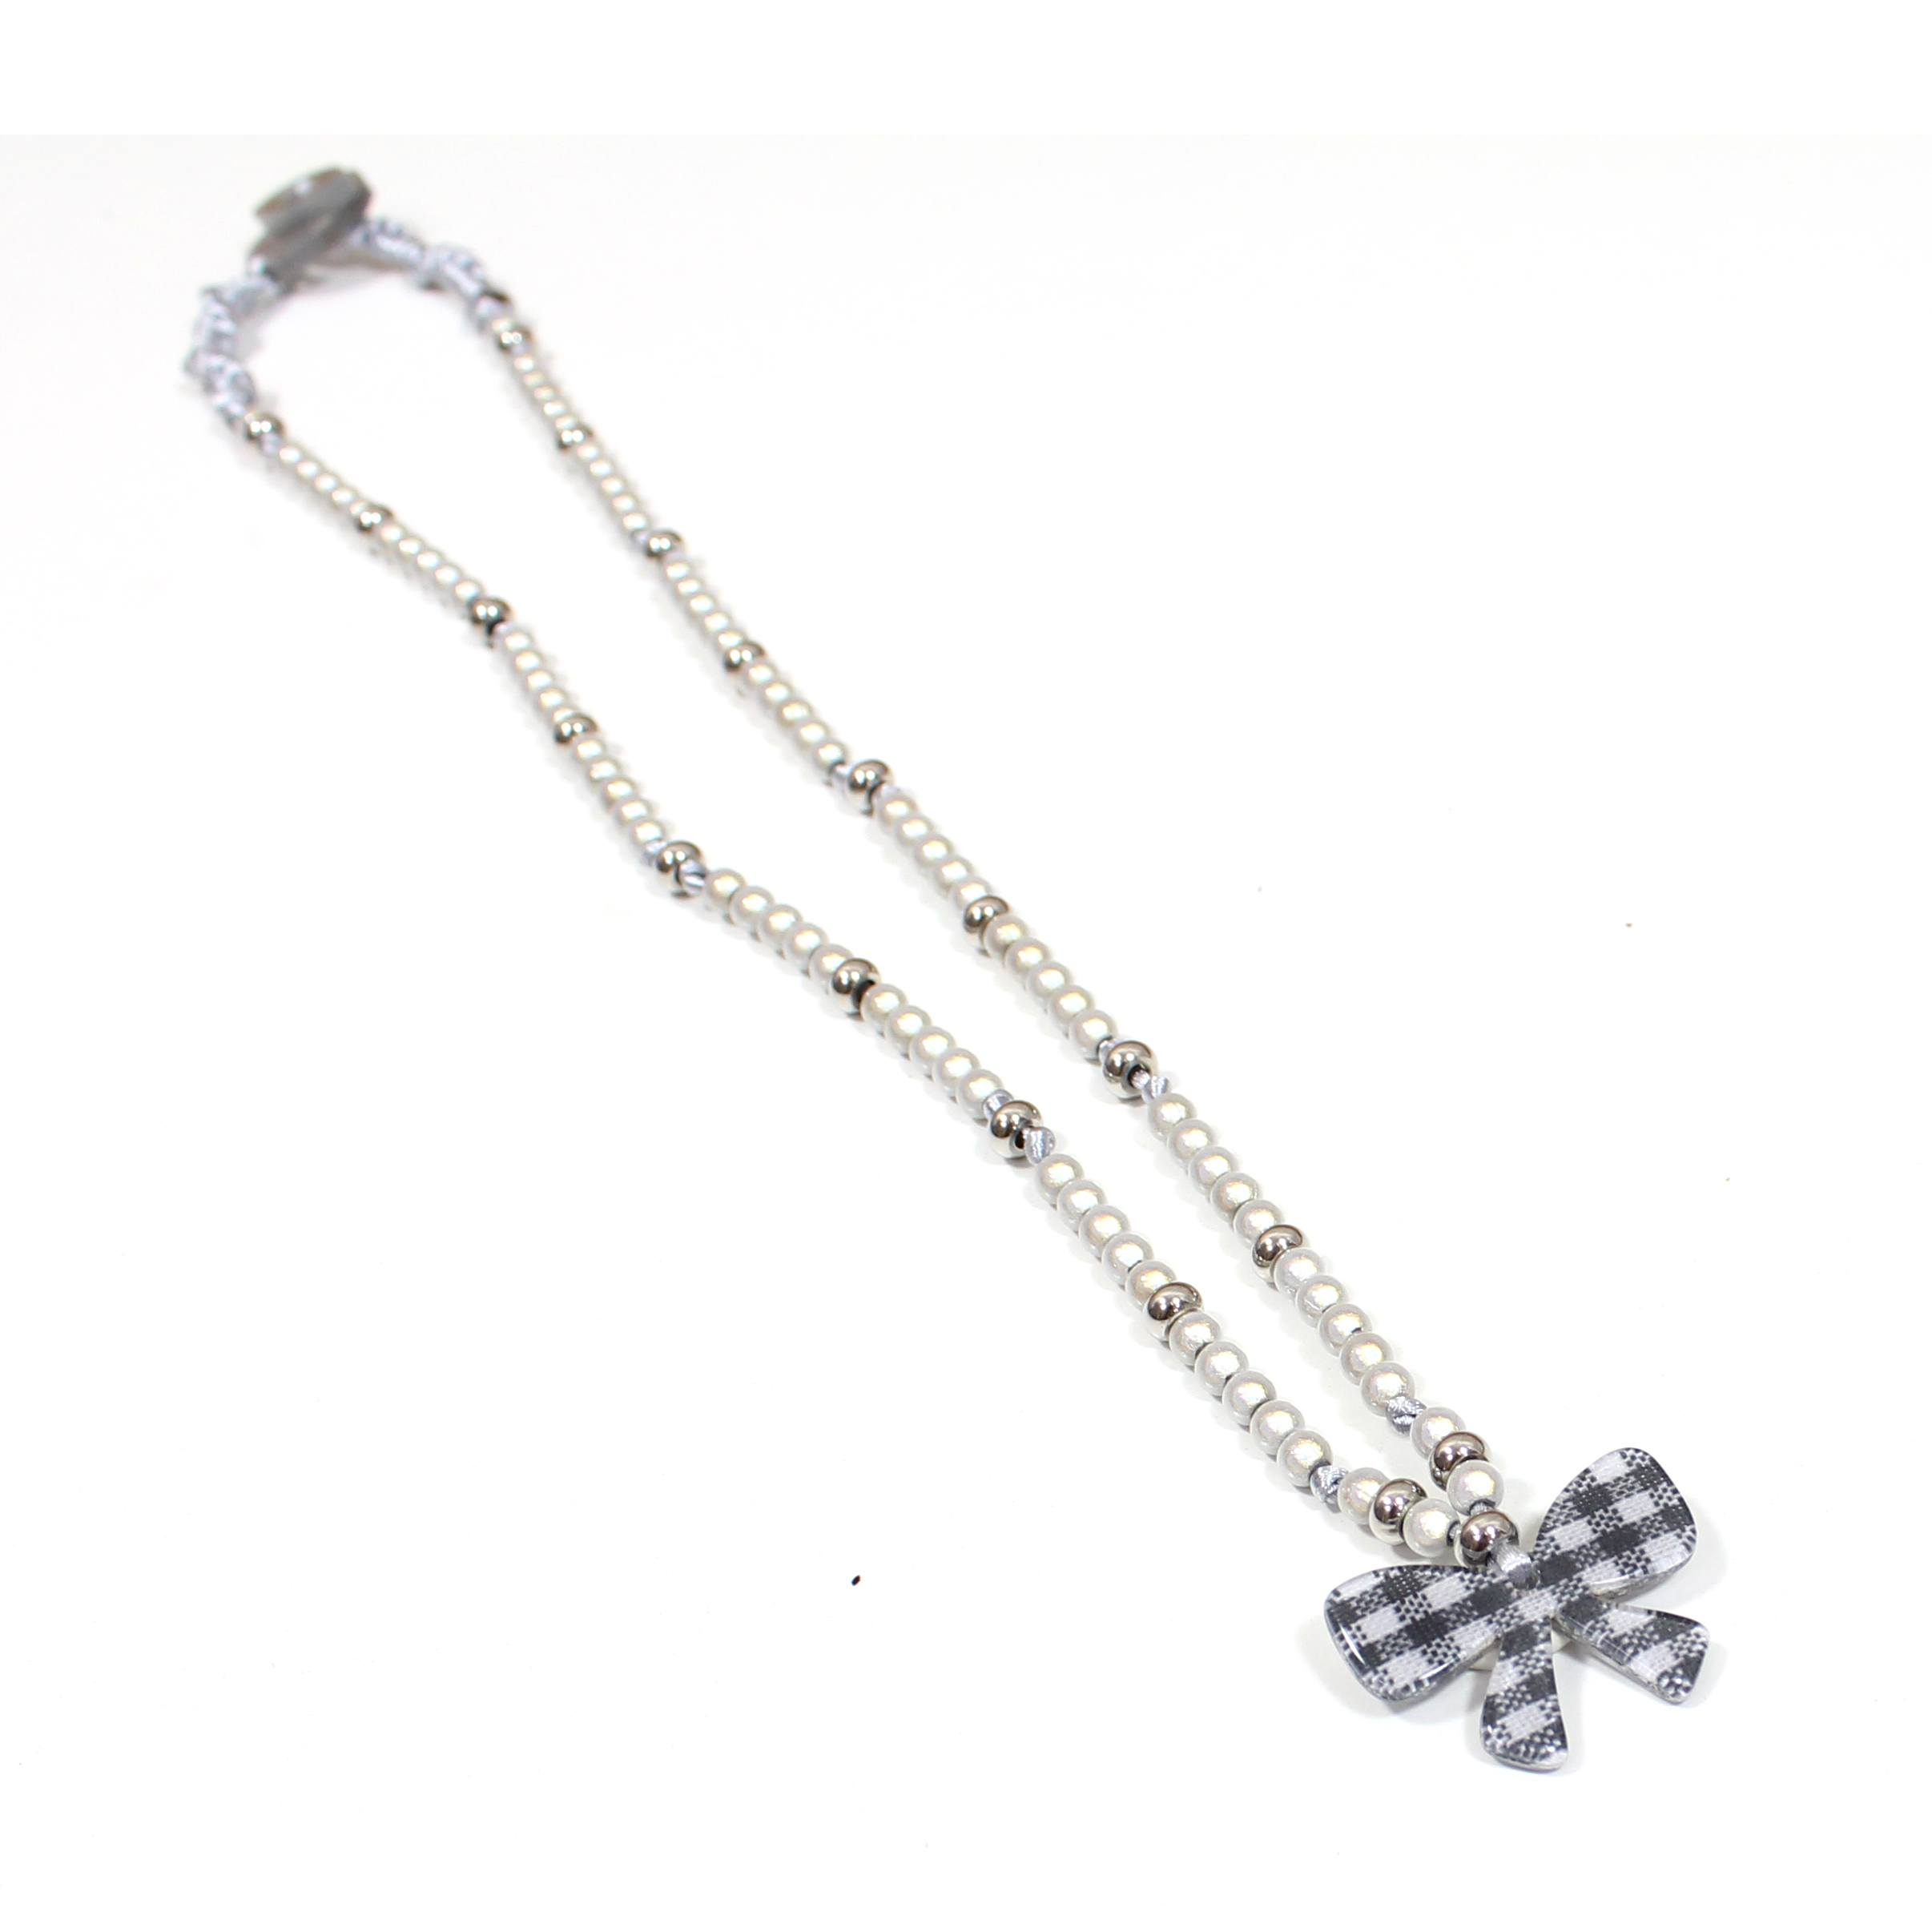 christian pendant necklace the jewelry products realreal enlarged bow necklaces dior